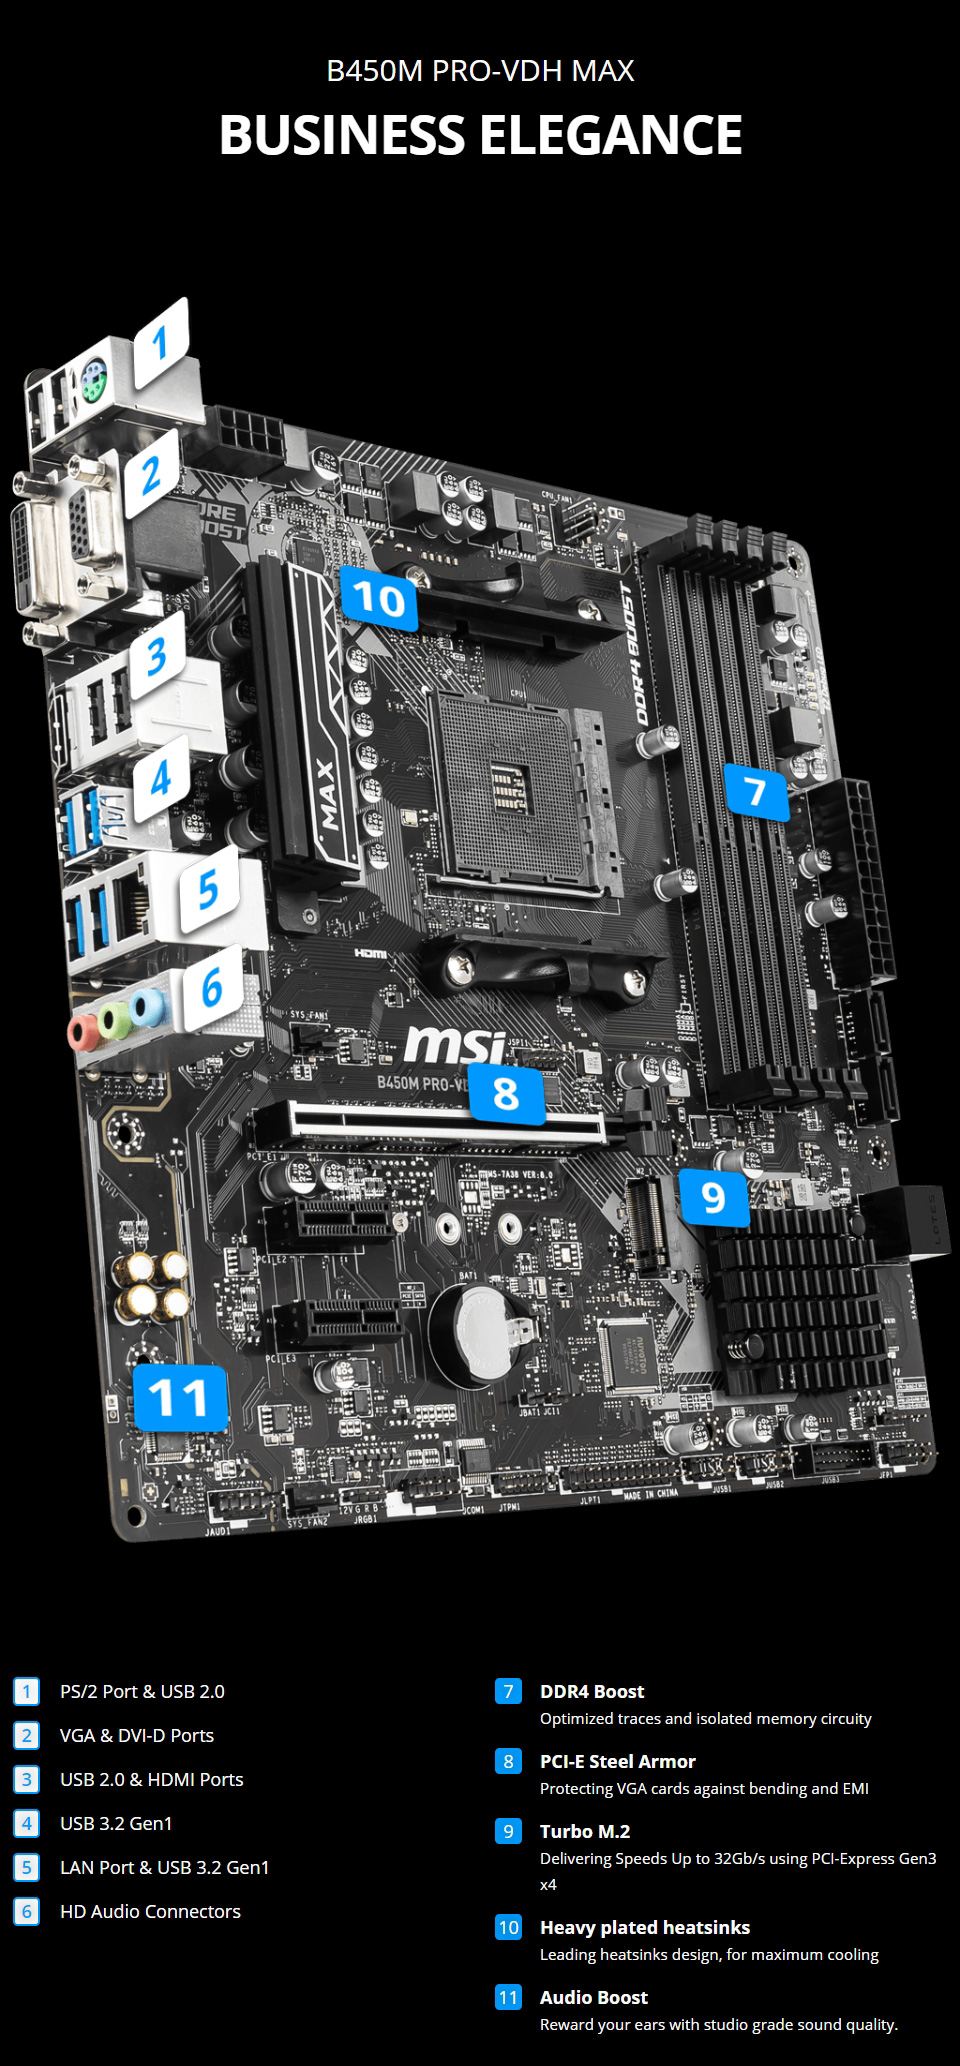 MSI B450M Pro-VDH Max Motherboard features